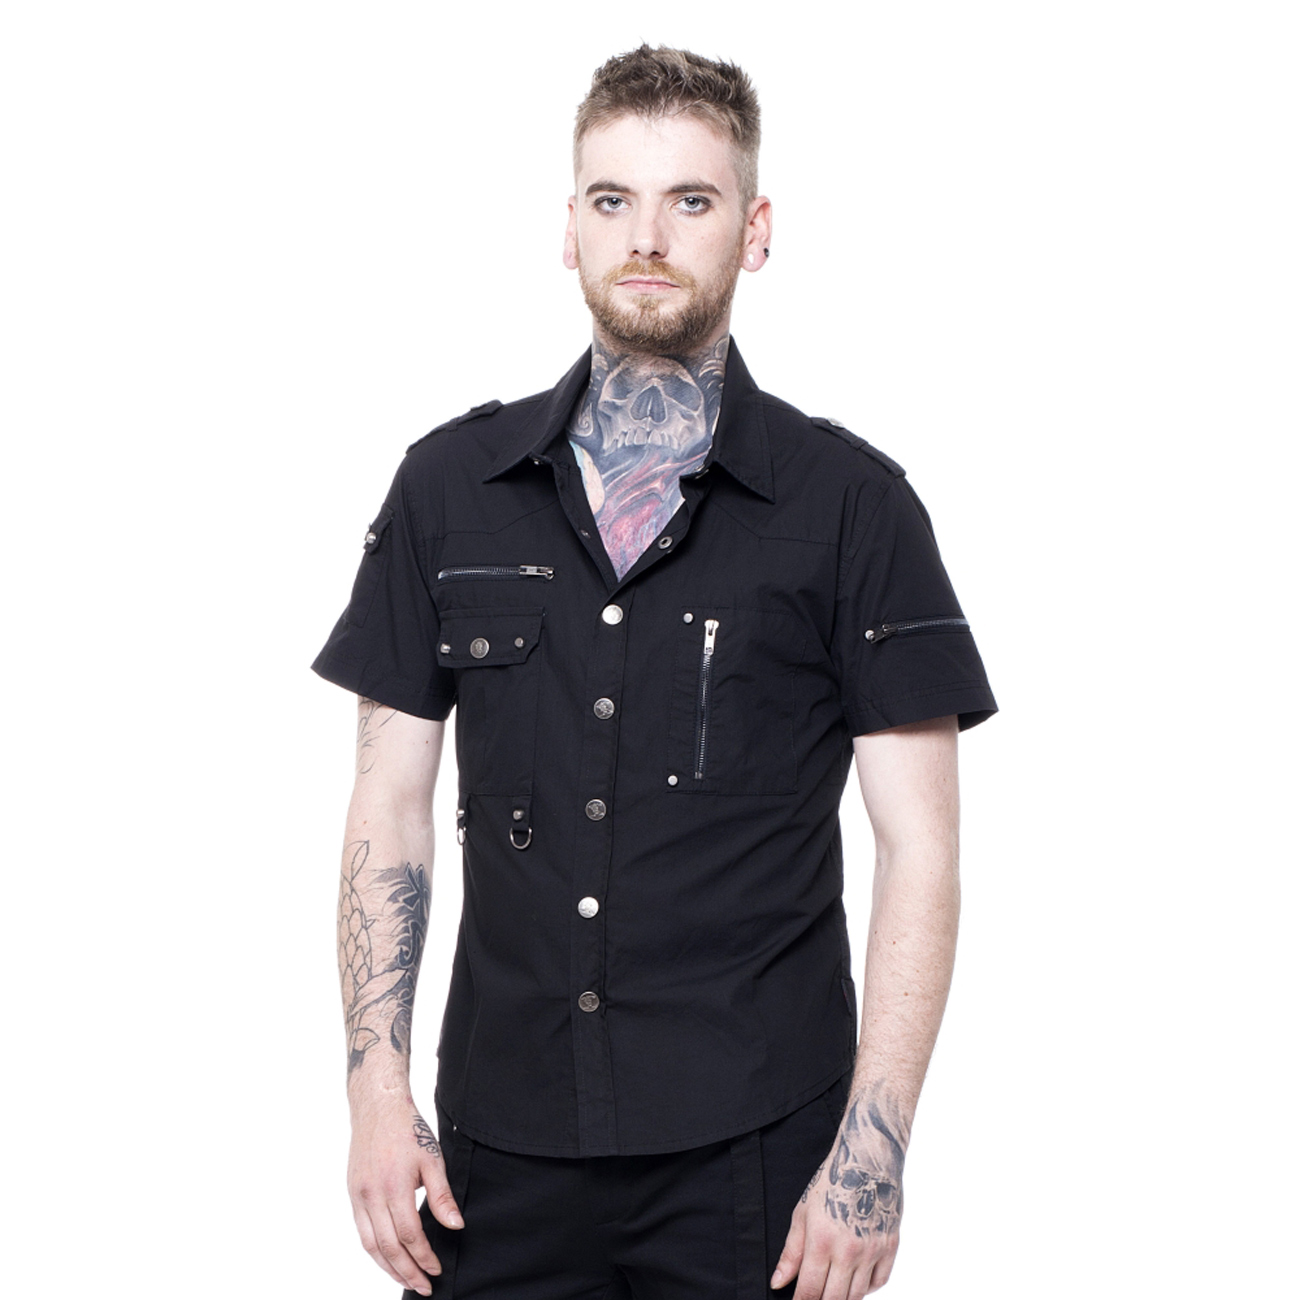 military zipper shirt schwarzes gothic herren hemd. Black Bedroom Furniture Sets. Home Design Ideas